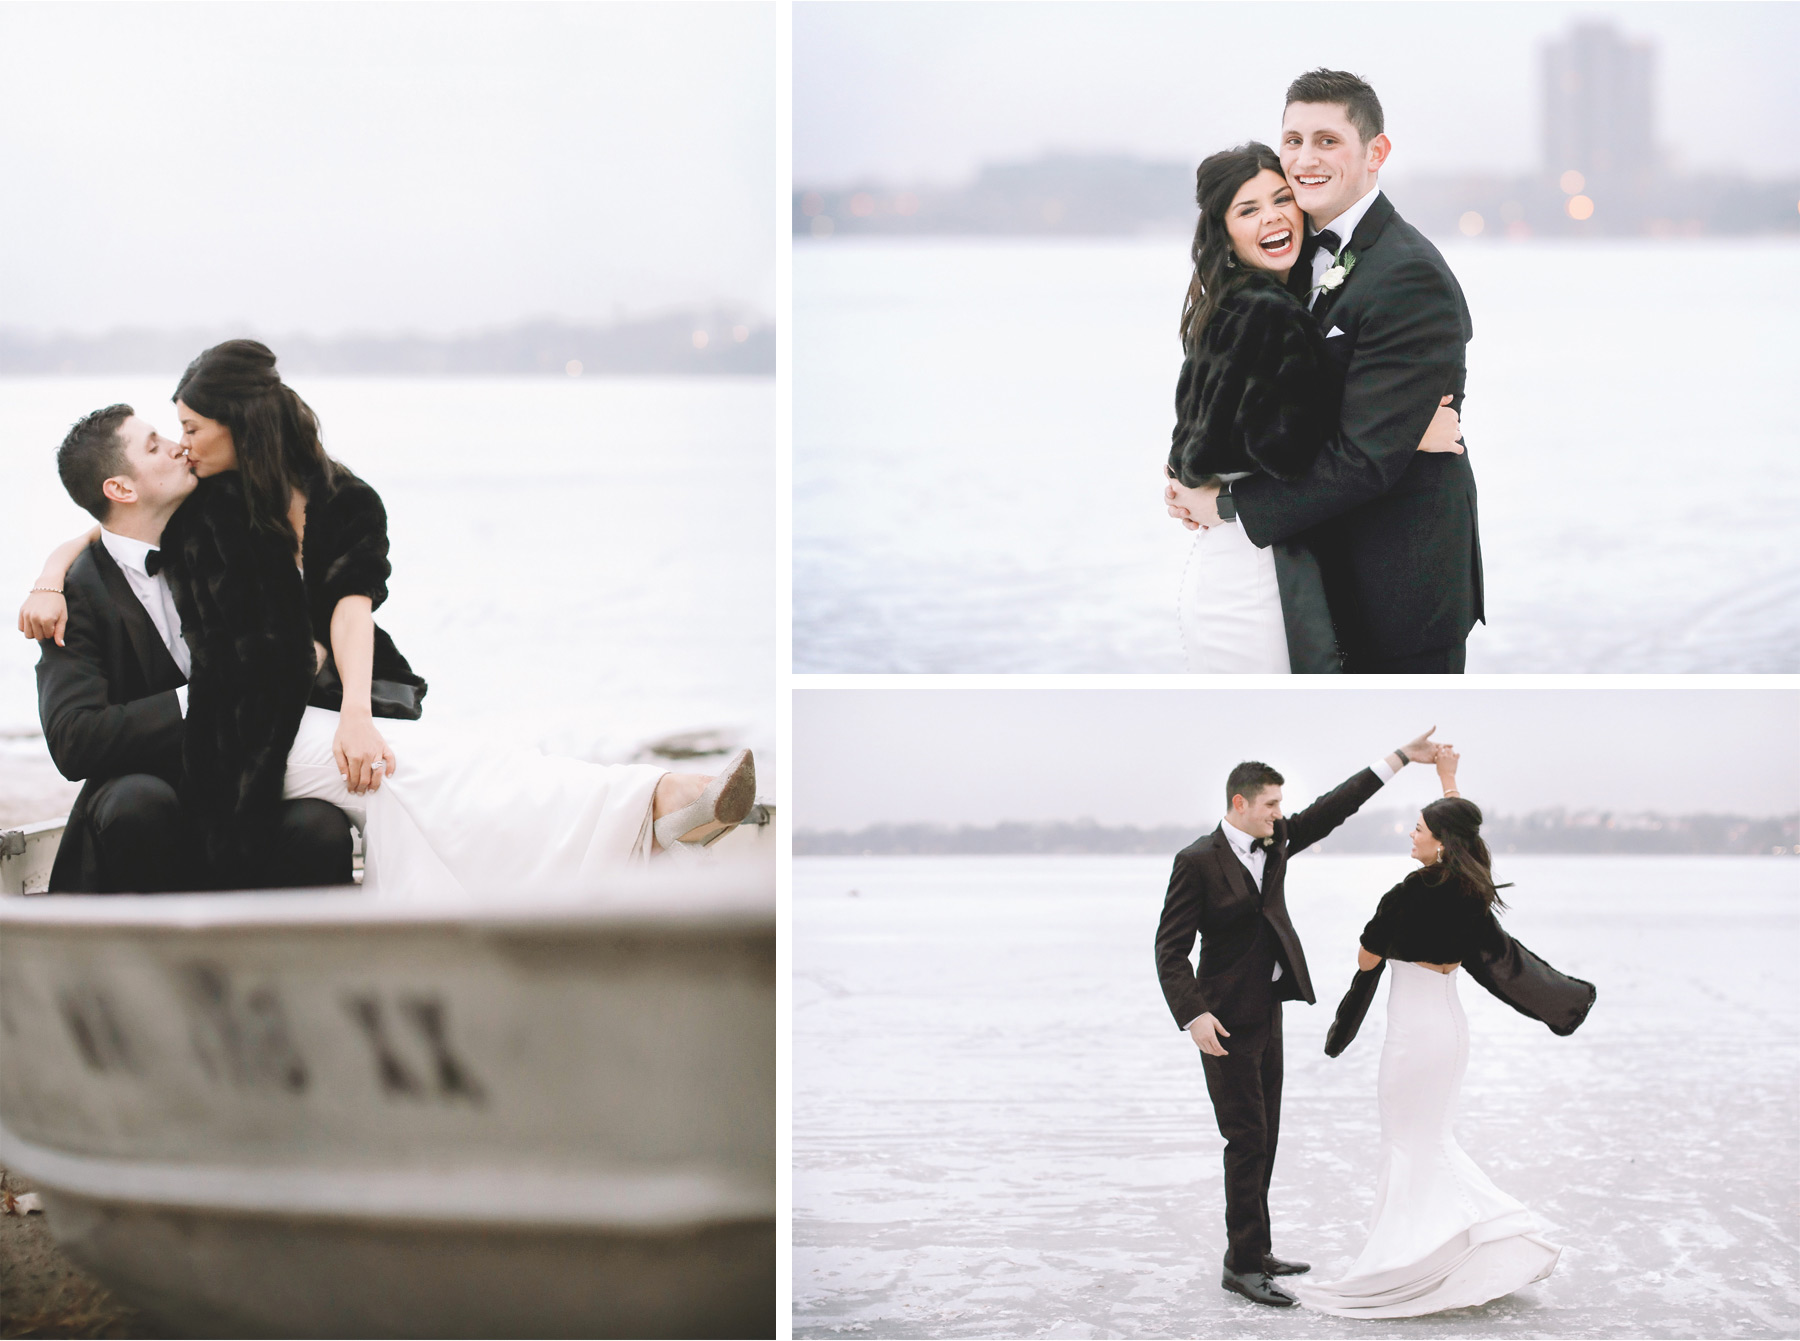 18-Minneapolis-Minnesota-Wedding-Photographer-by-Vick-Photography-Winter-Wedding-Frozen-Lake-Bride-and-Groom-Snow-Maggie-and-Matt.jpg